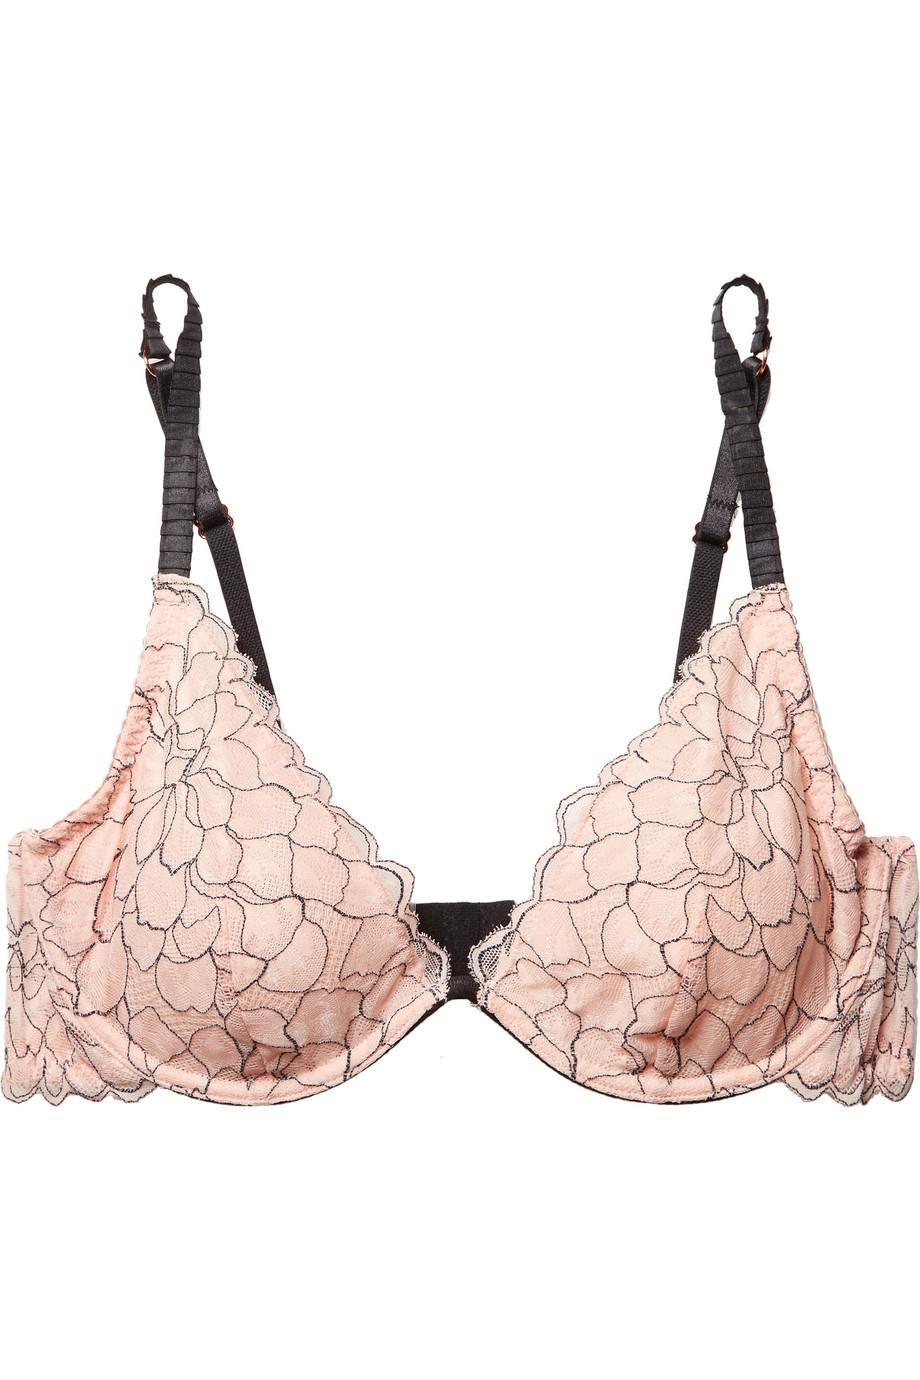 6086810bd2519 Lyst - Eberjey Rosario The Plunge Stretch-corded Lace Underwired Bra